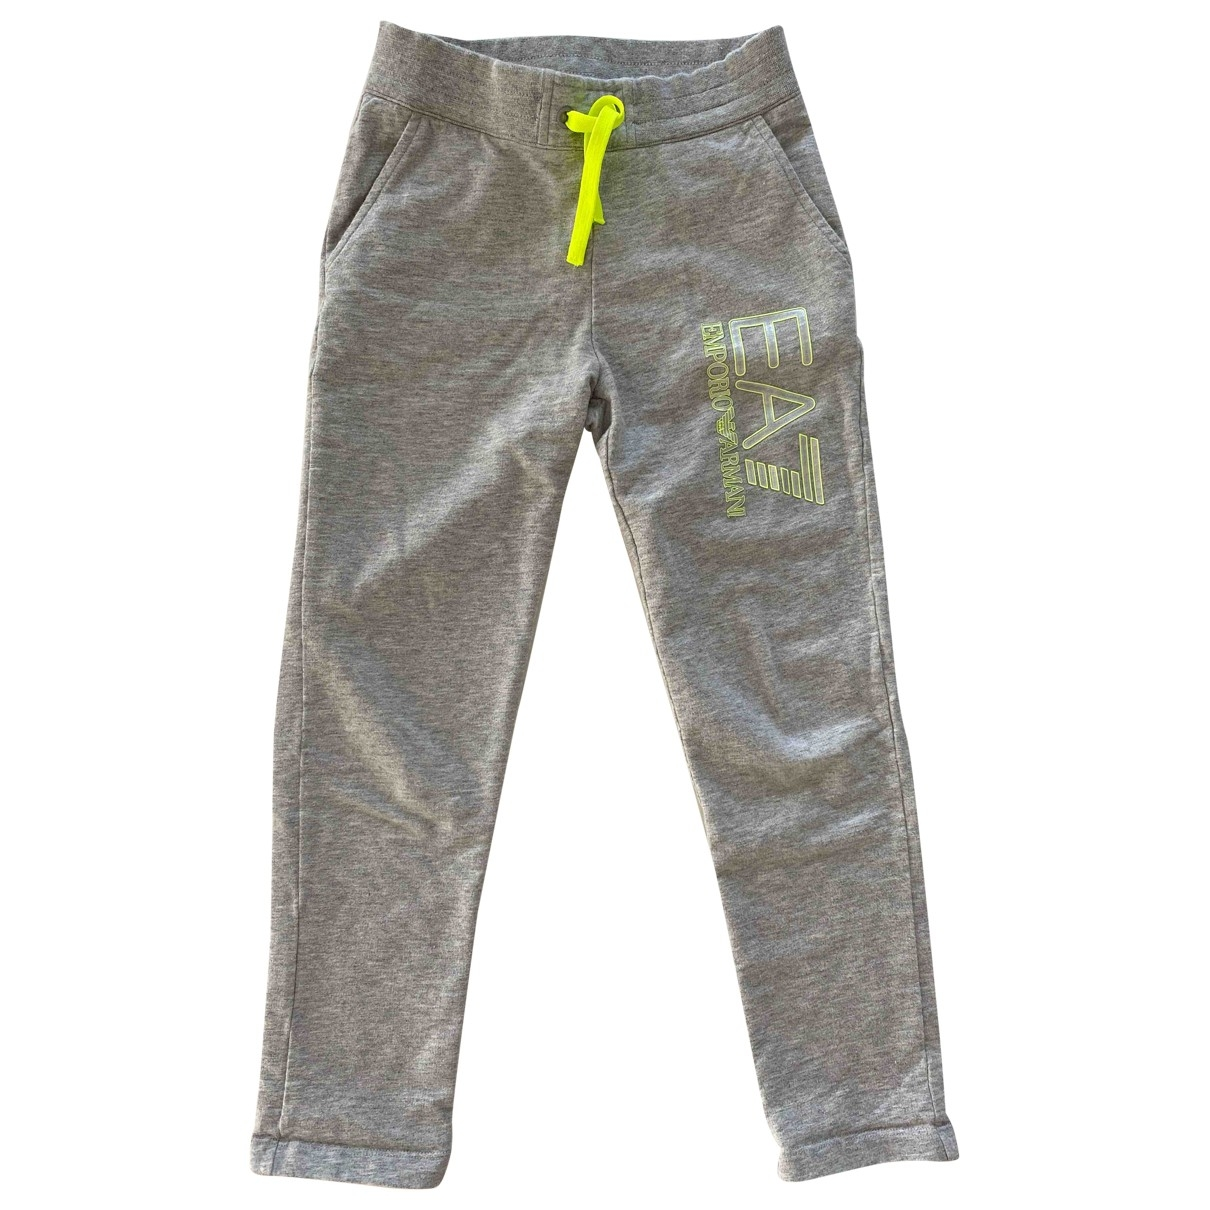 Emporio Armani \N Grey Cotton Trousers for Kids 8 years - up to 128cm FR